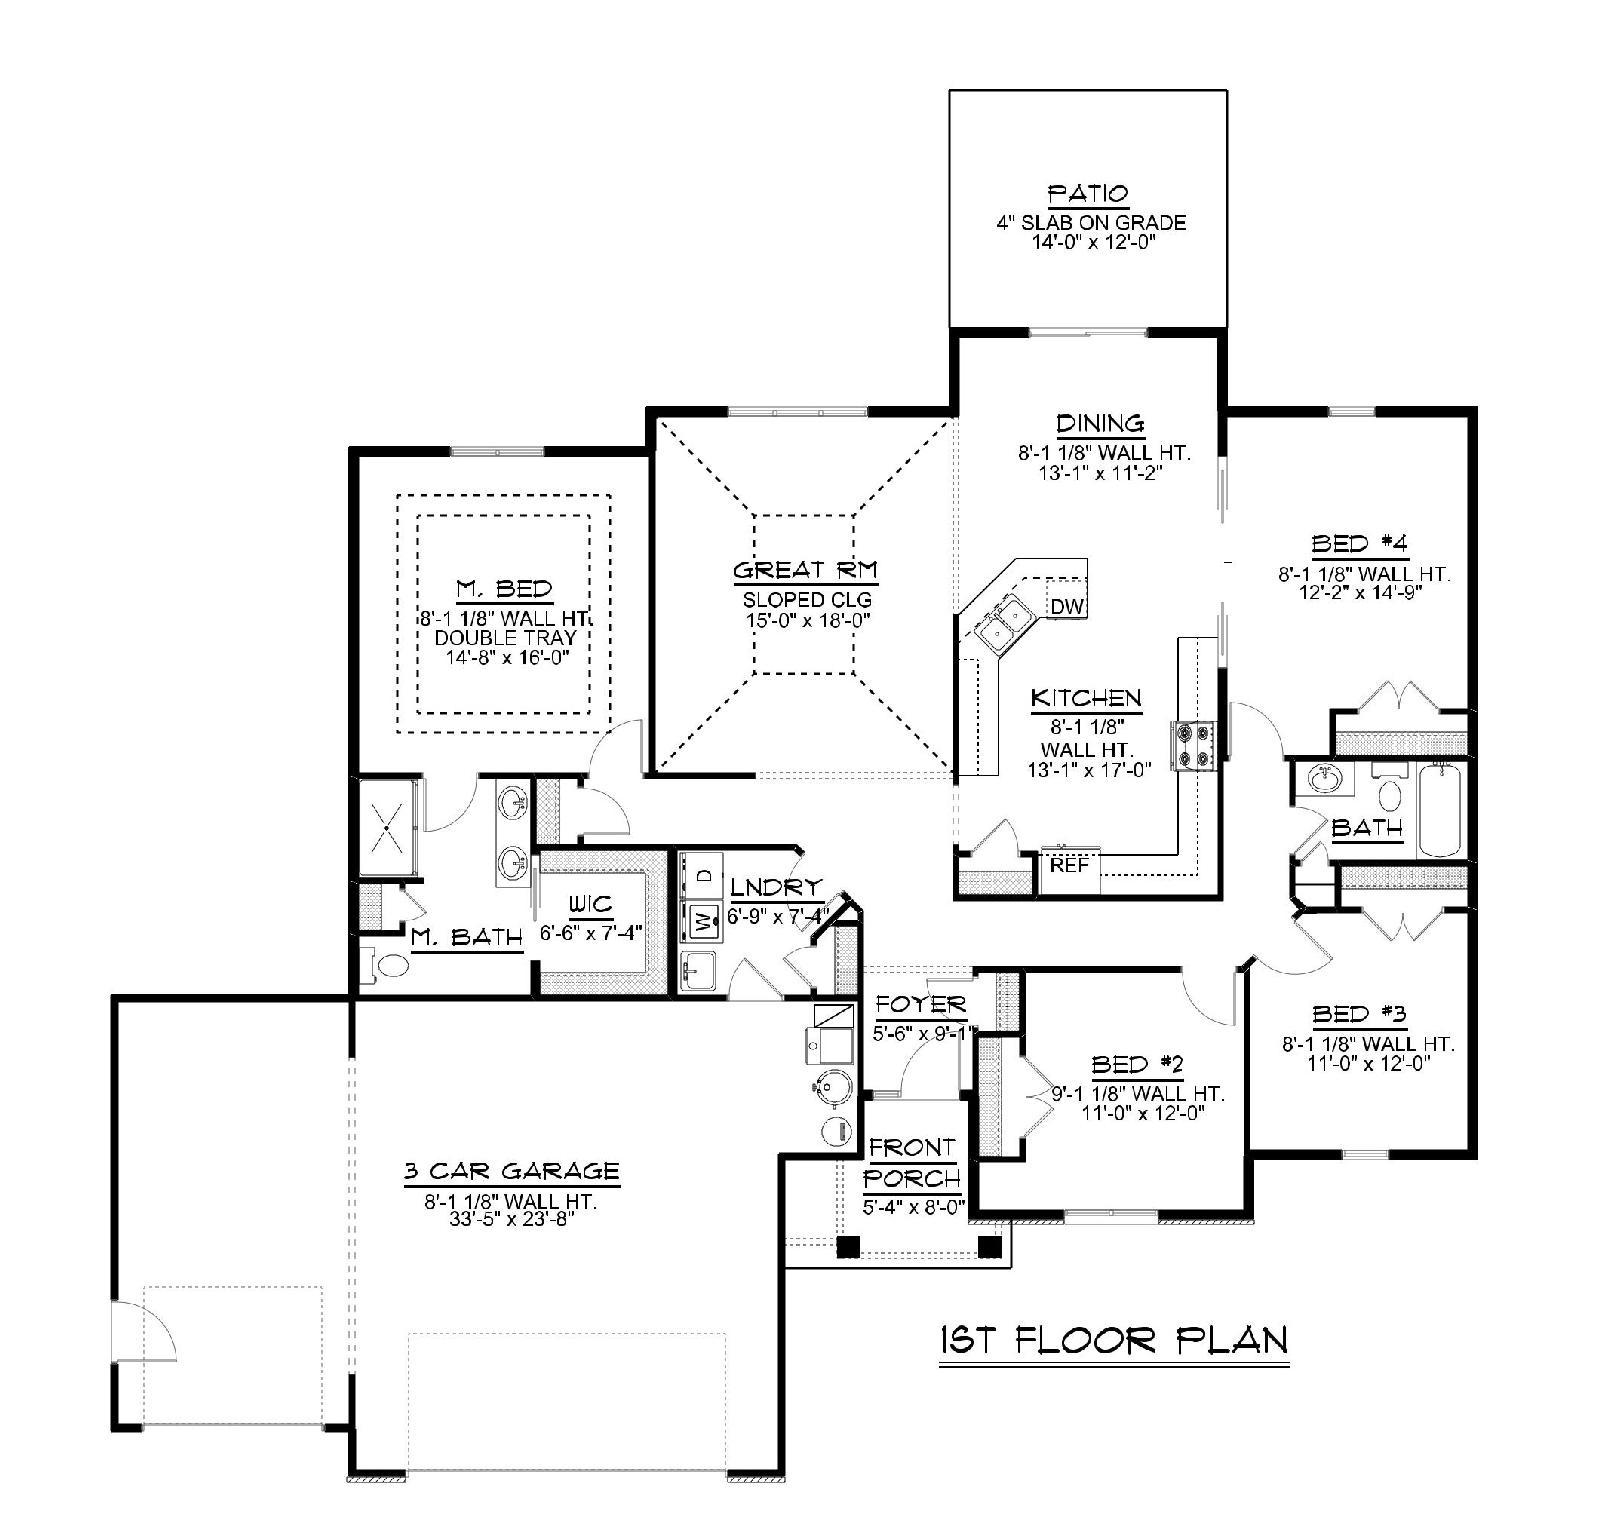 Slab on grade 2 story house plans for Slab on grade floor plans